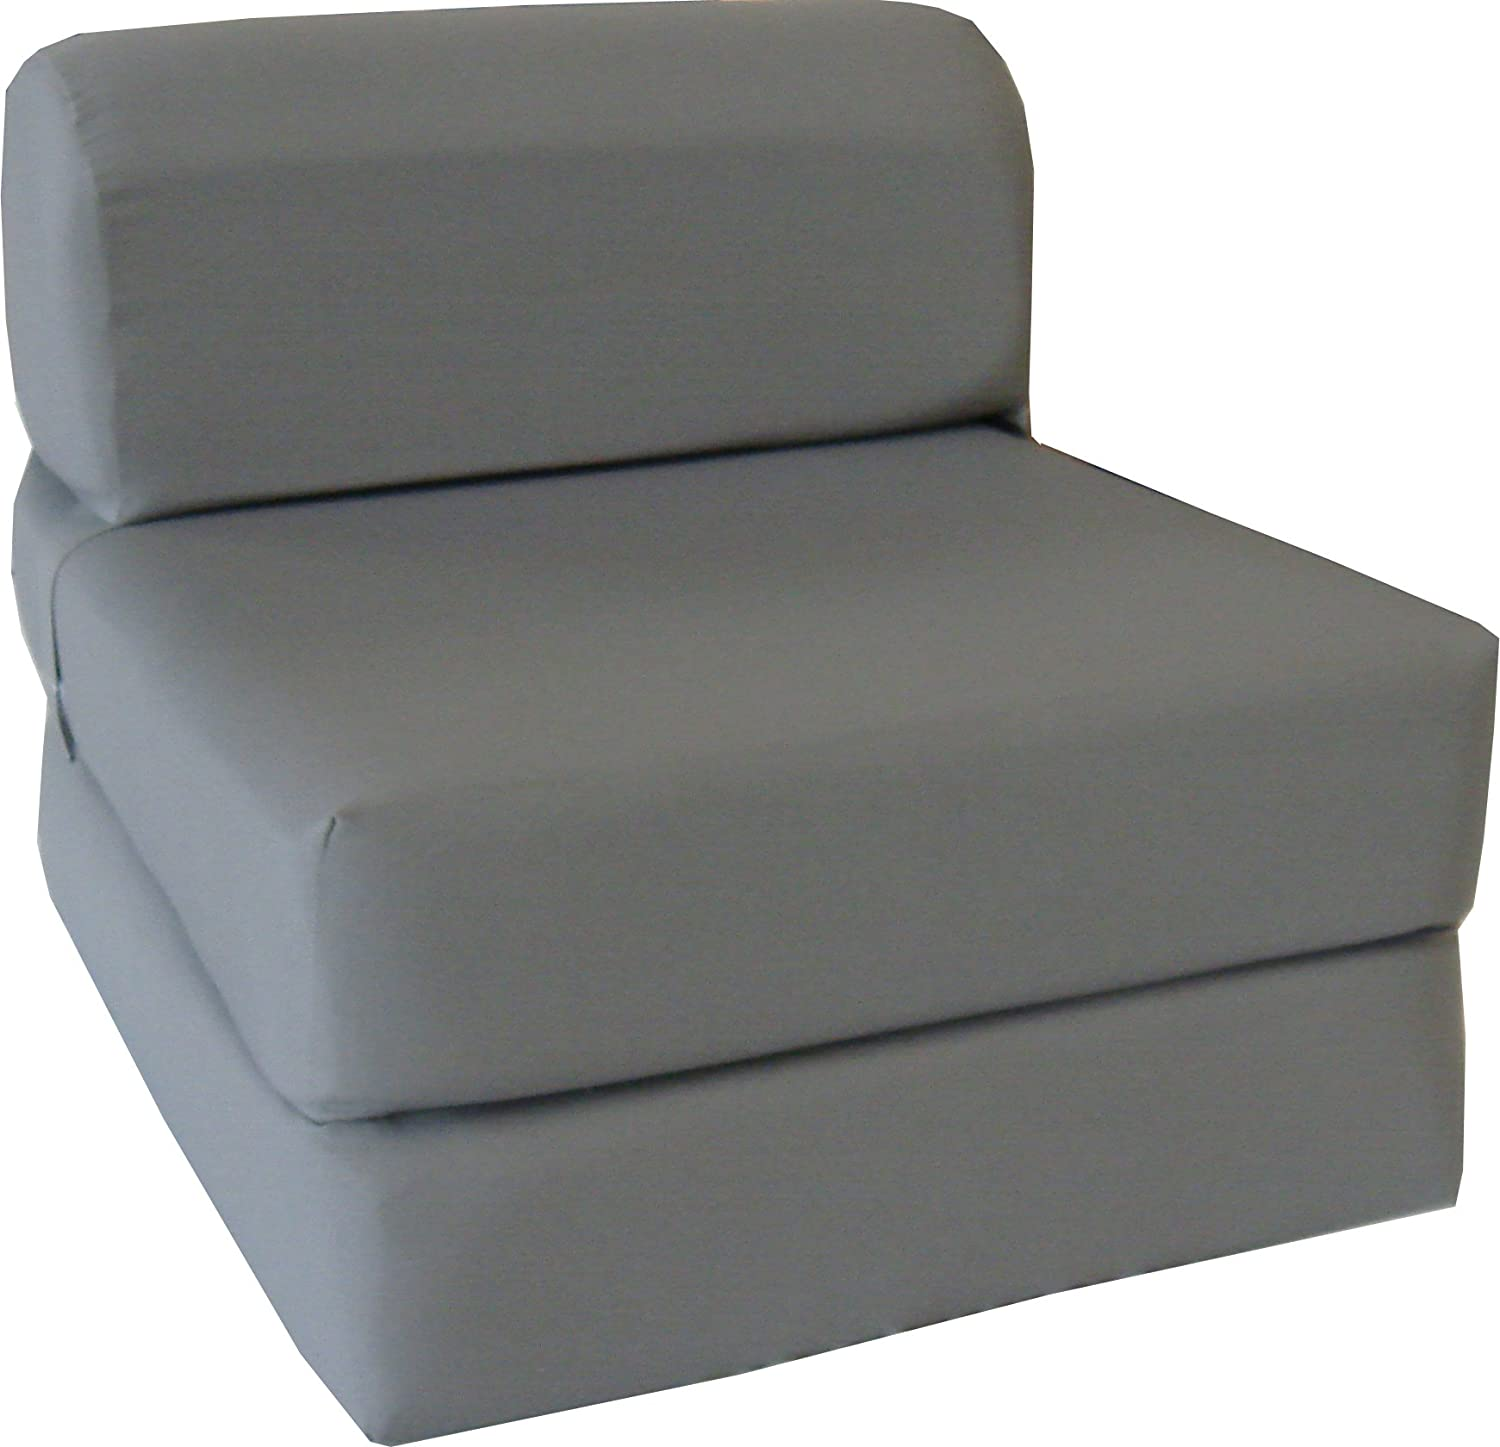 "Amazon Gray Sleeper Chair Folding Foam Bed Sized 6"" Thick X"